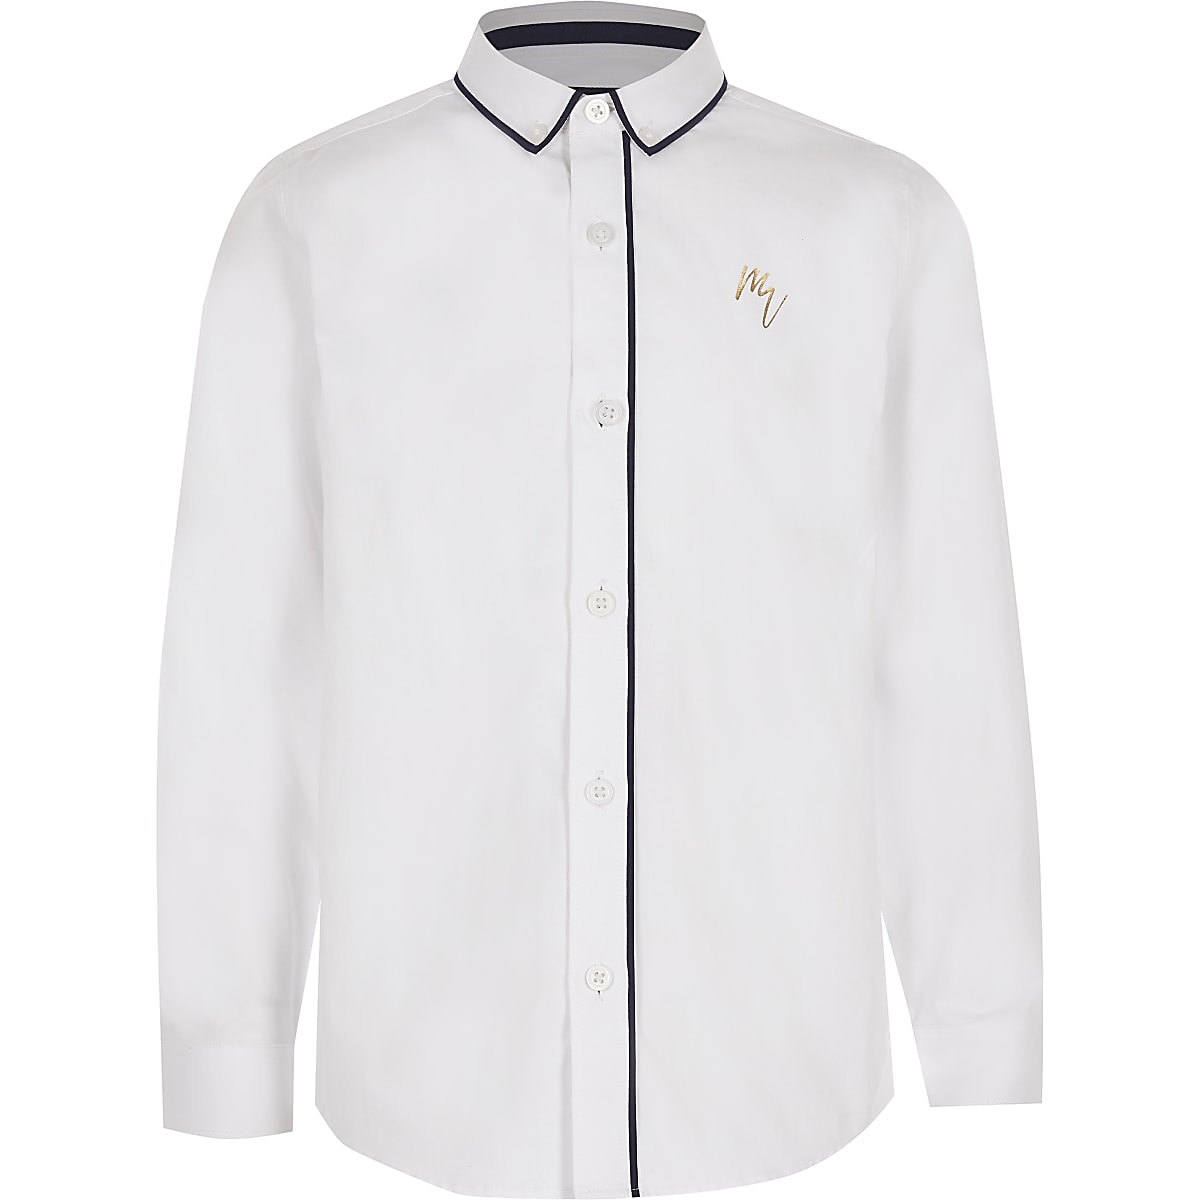 Boys white Maison Riviera piped shirt